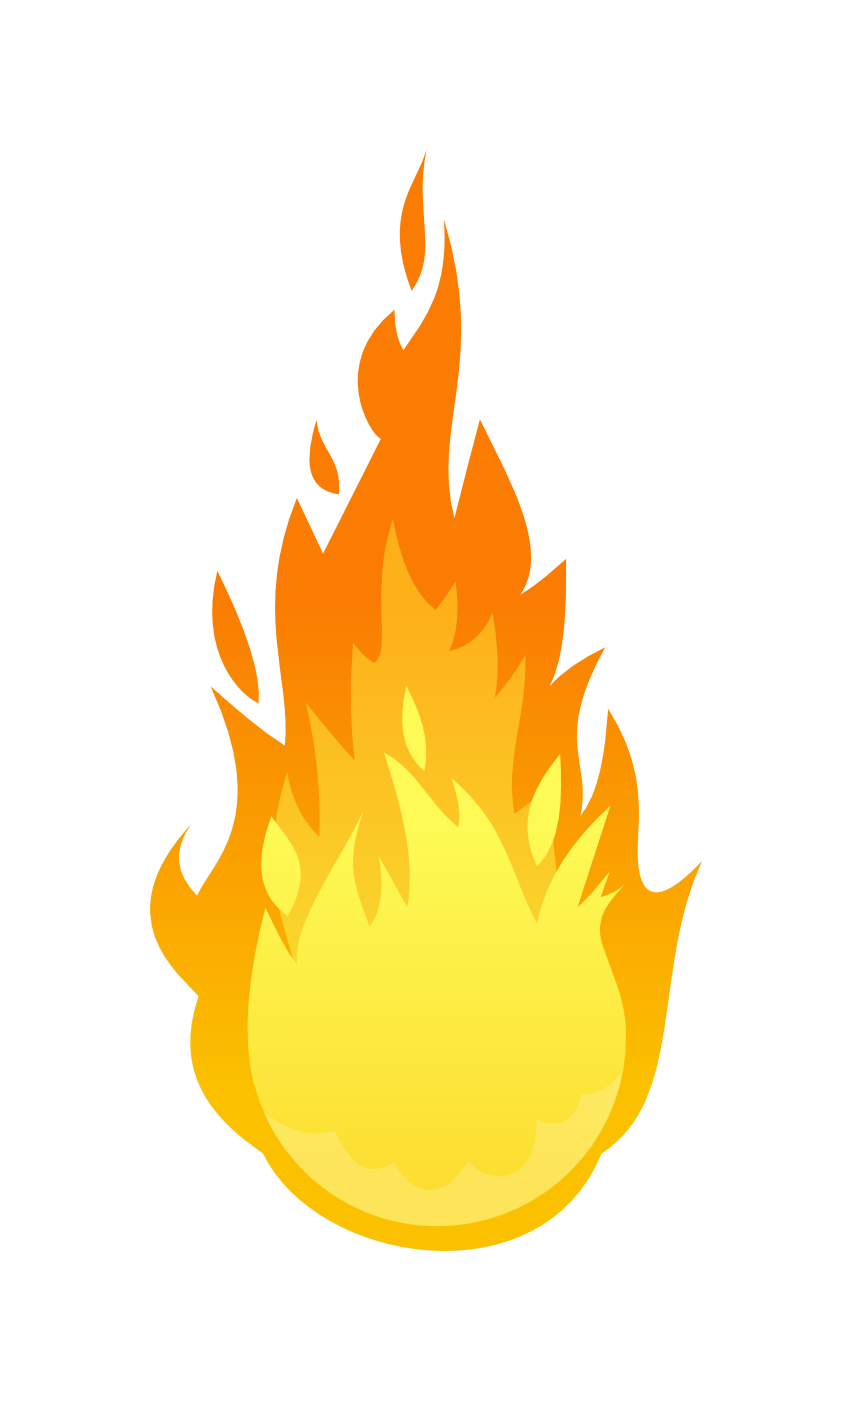 Fuego vector png. Fire flames transparent images